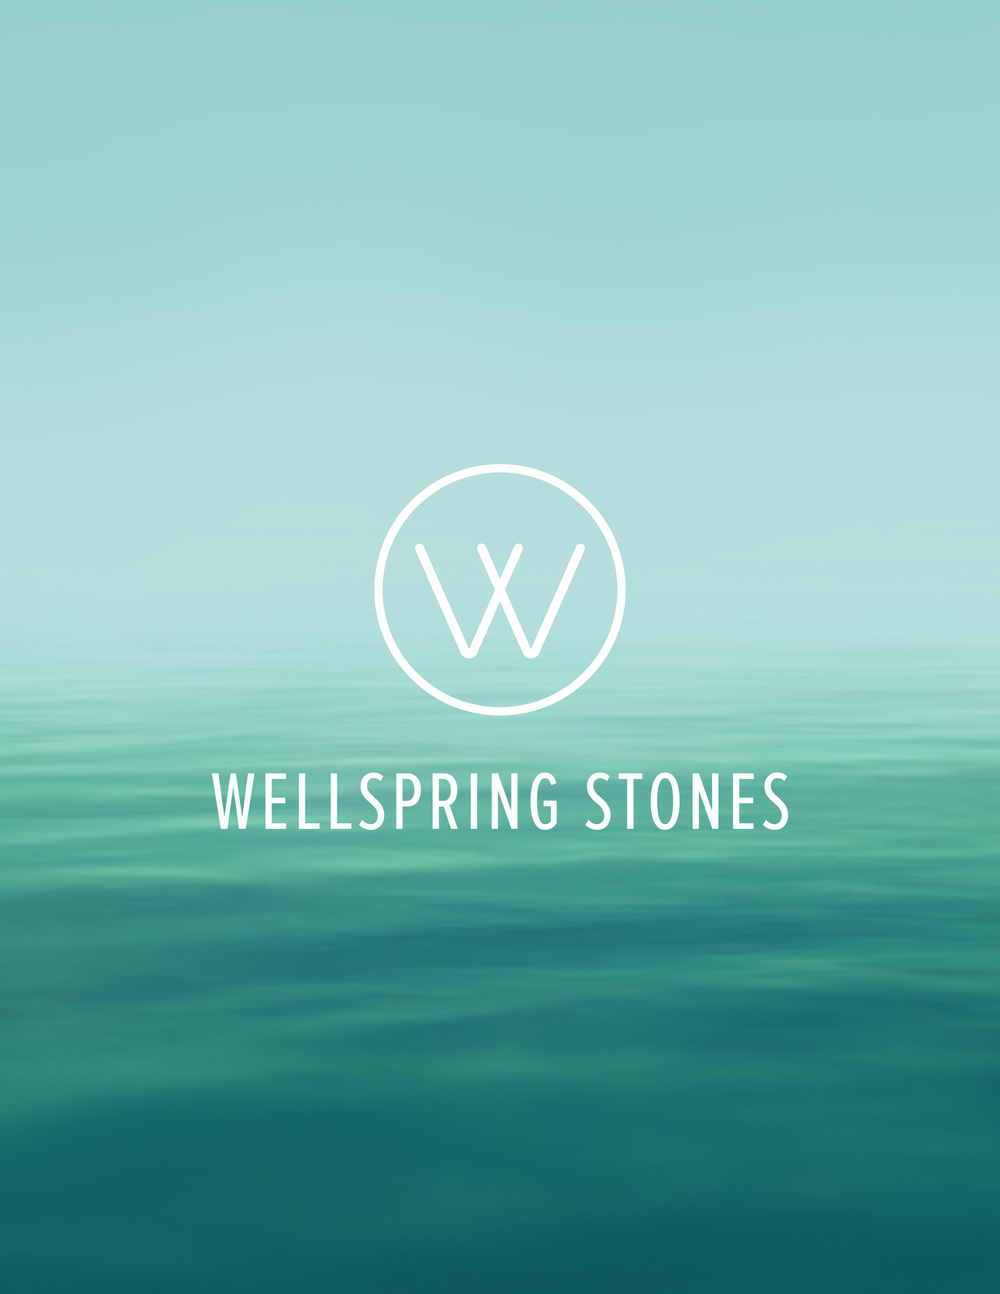 WELLSPRING STONES—Corporate Identity